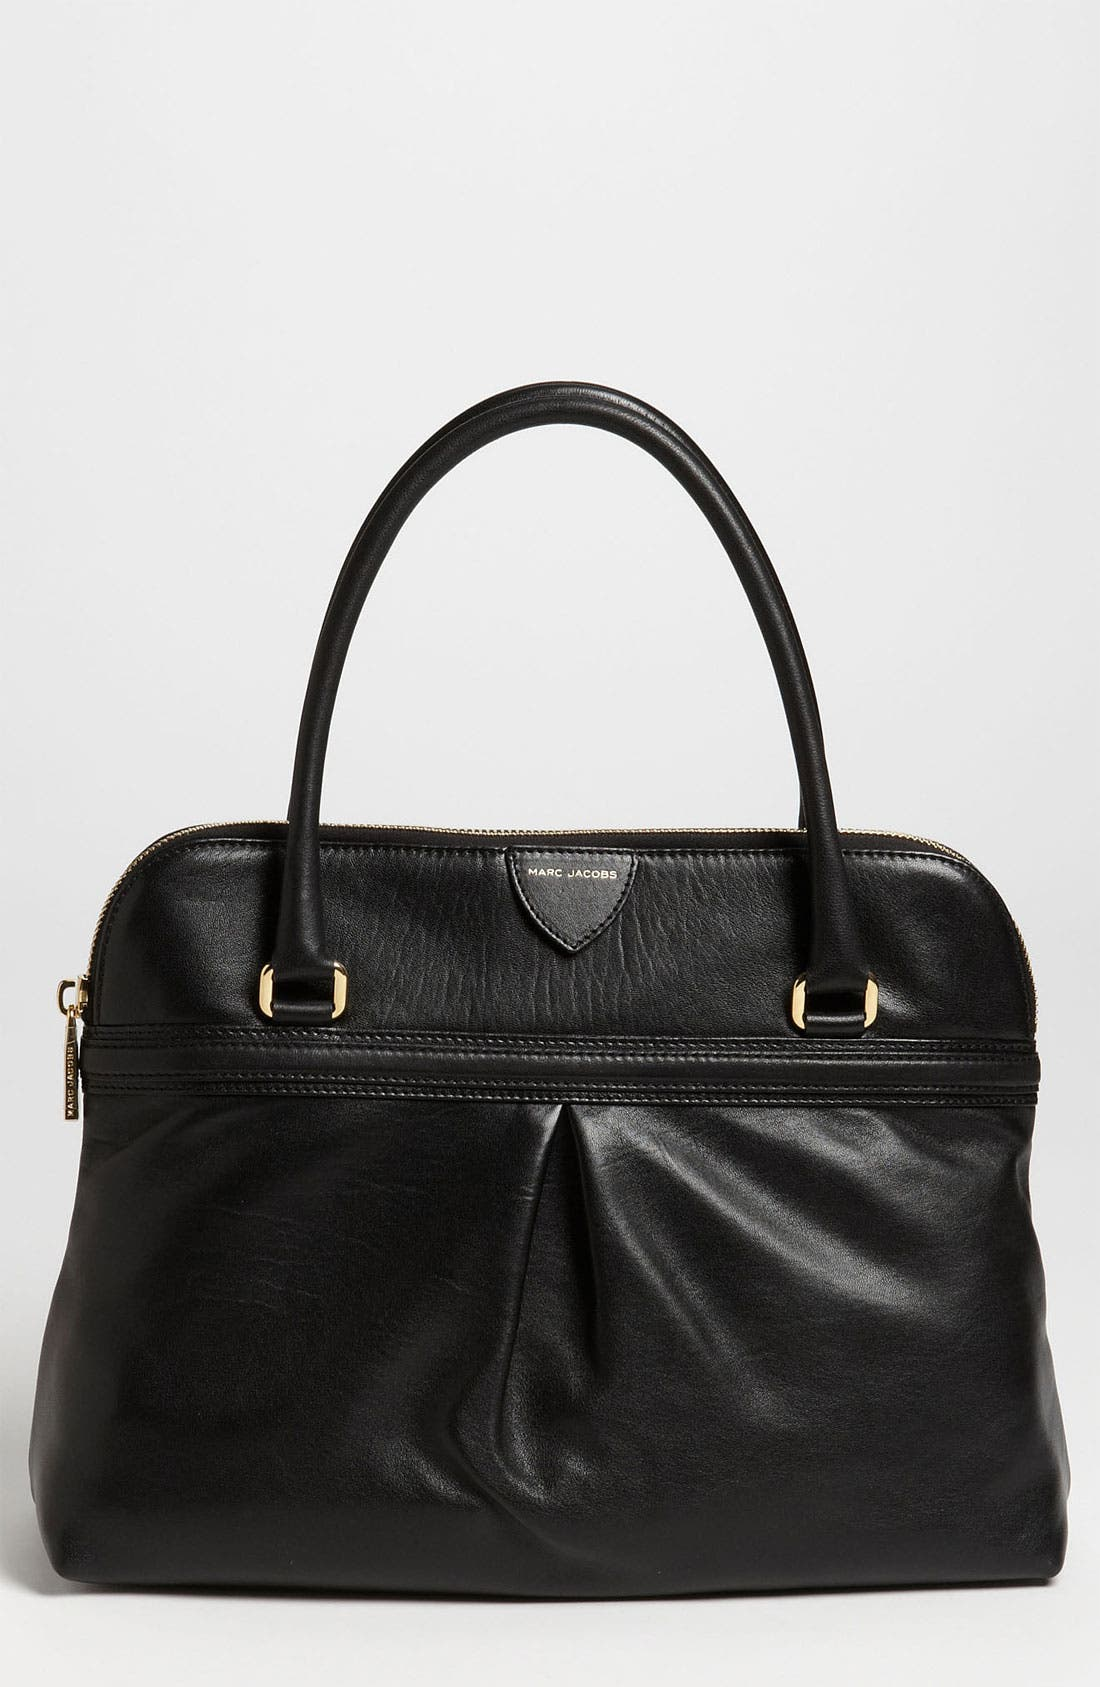 Alternate Image 1 Selected - MARC JACOBS 'Raleigh' Leather Handbag